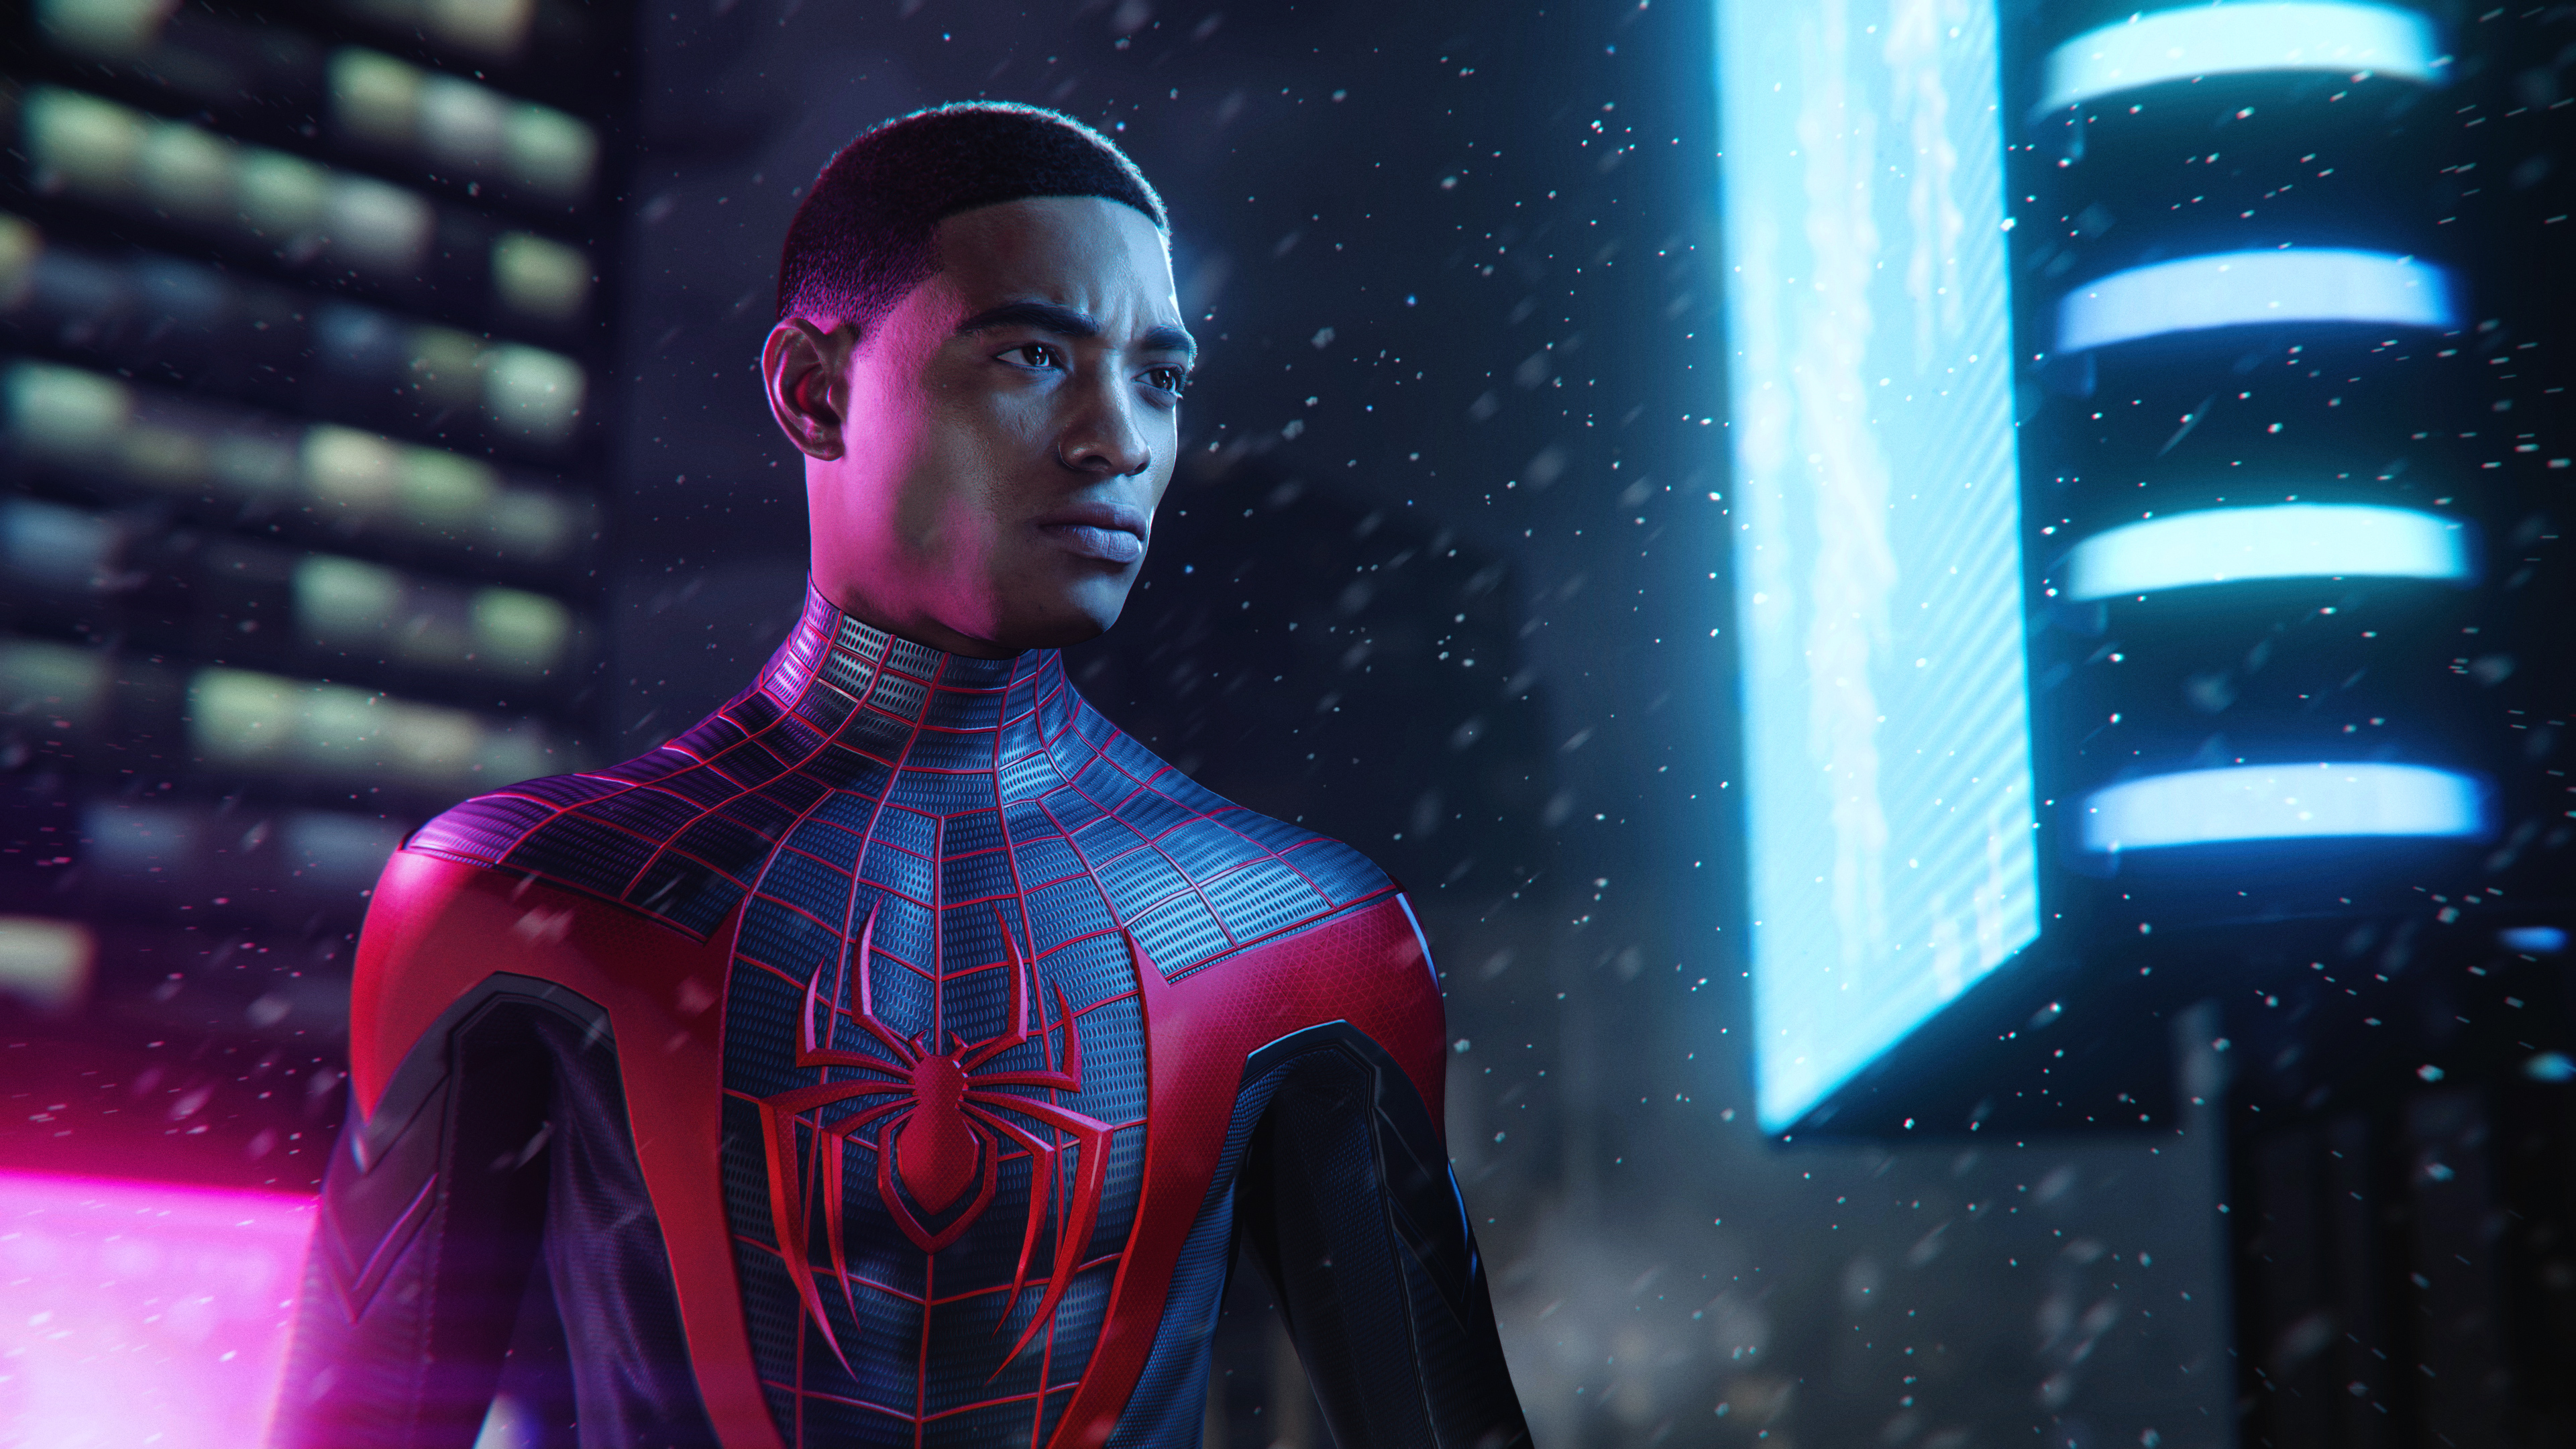 Spiderman Miles Morales Ps5 - 3840x2160 - Download HD Wallpaper - WallpaperTip